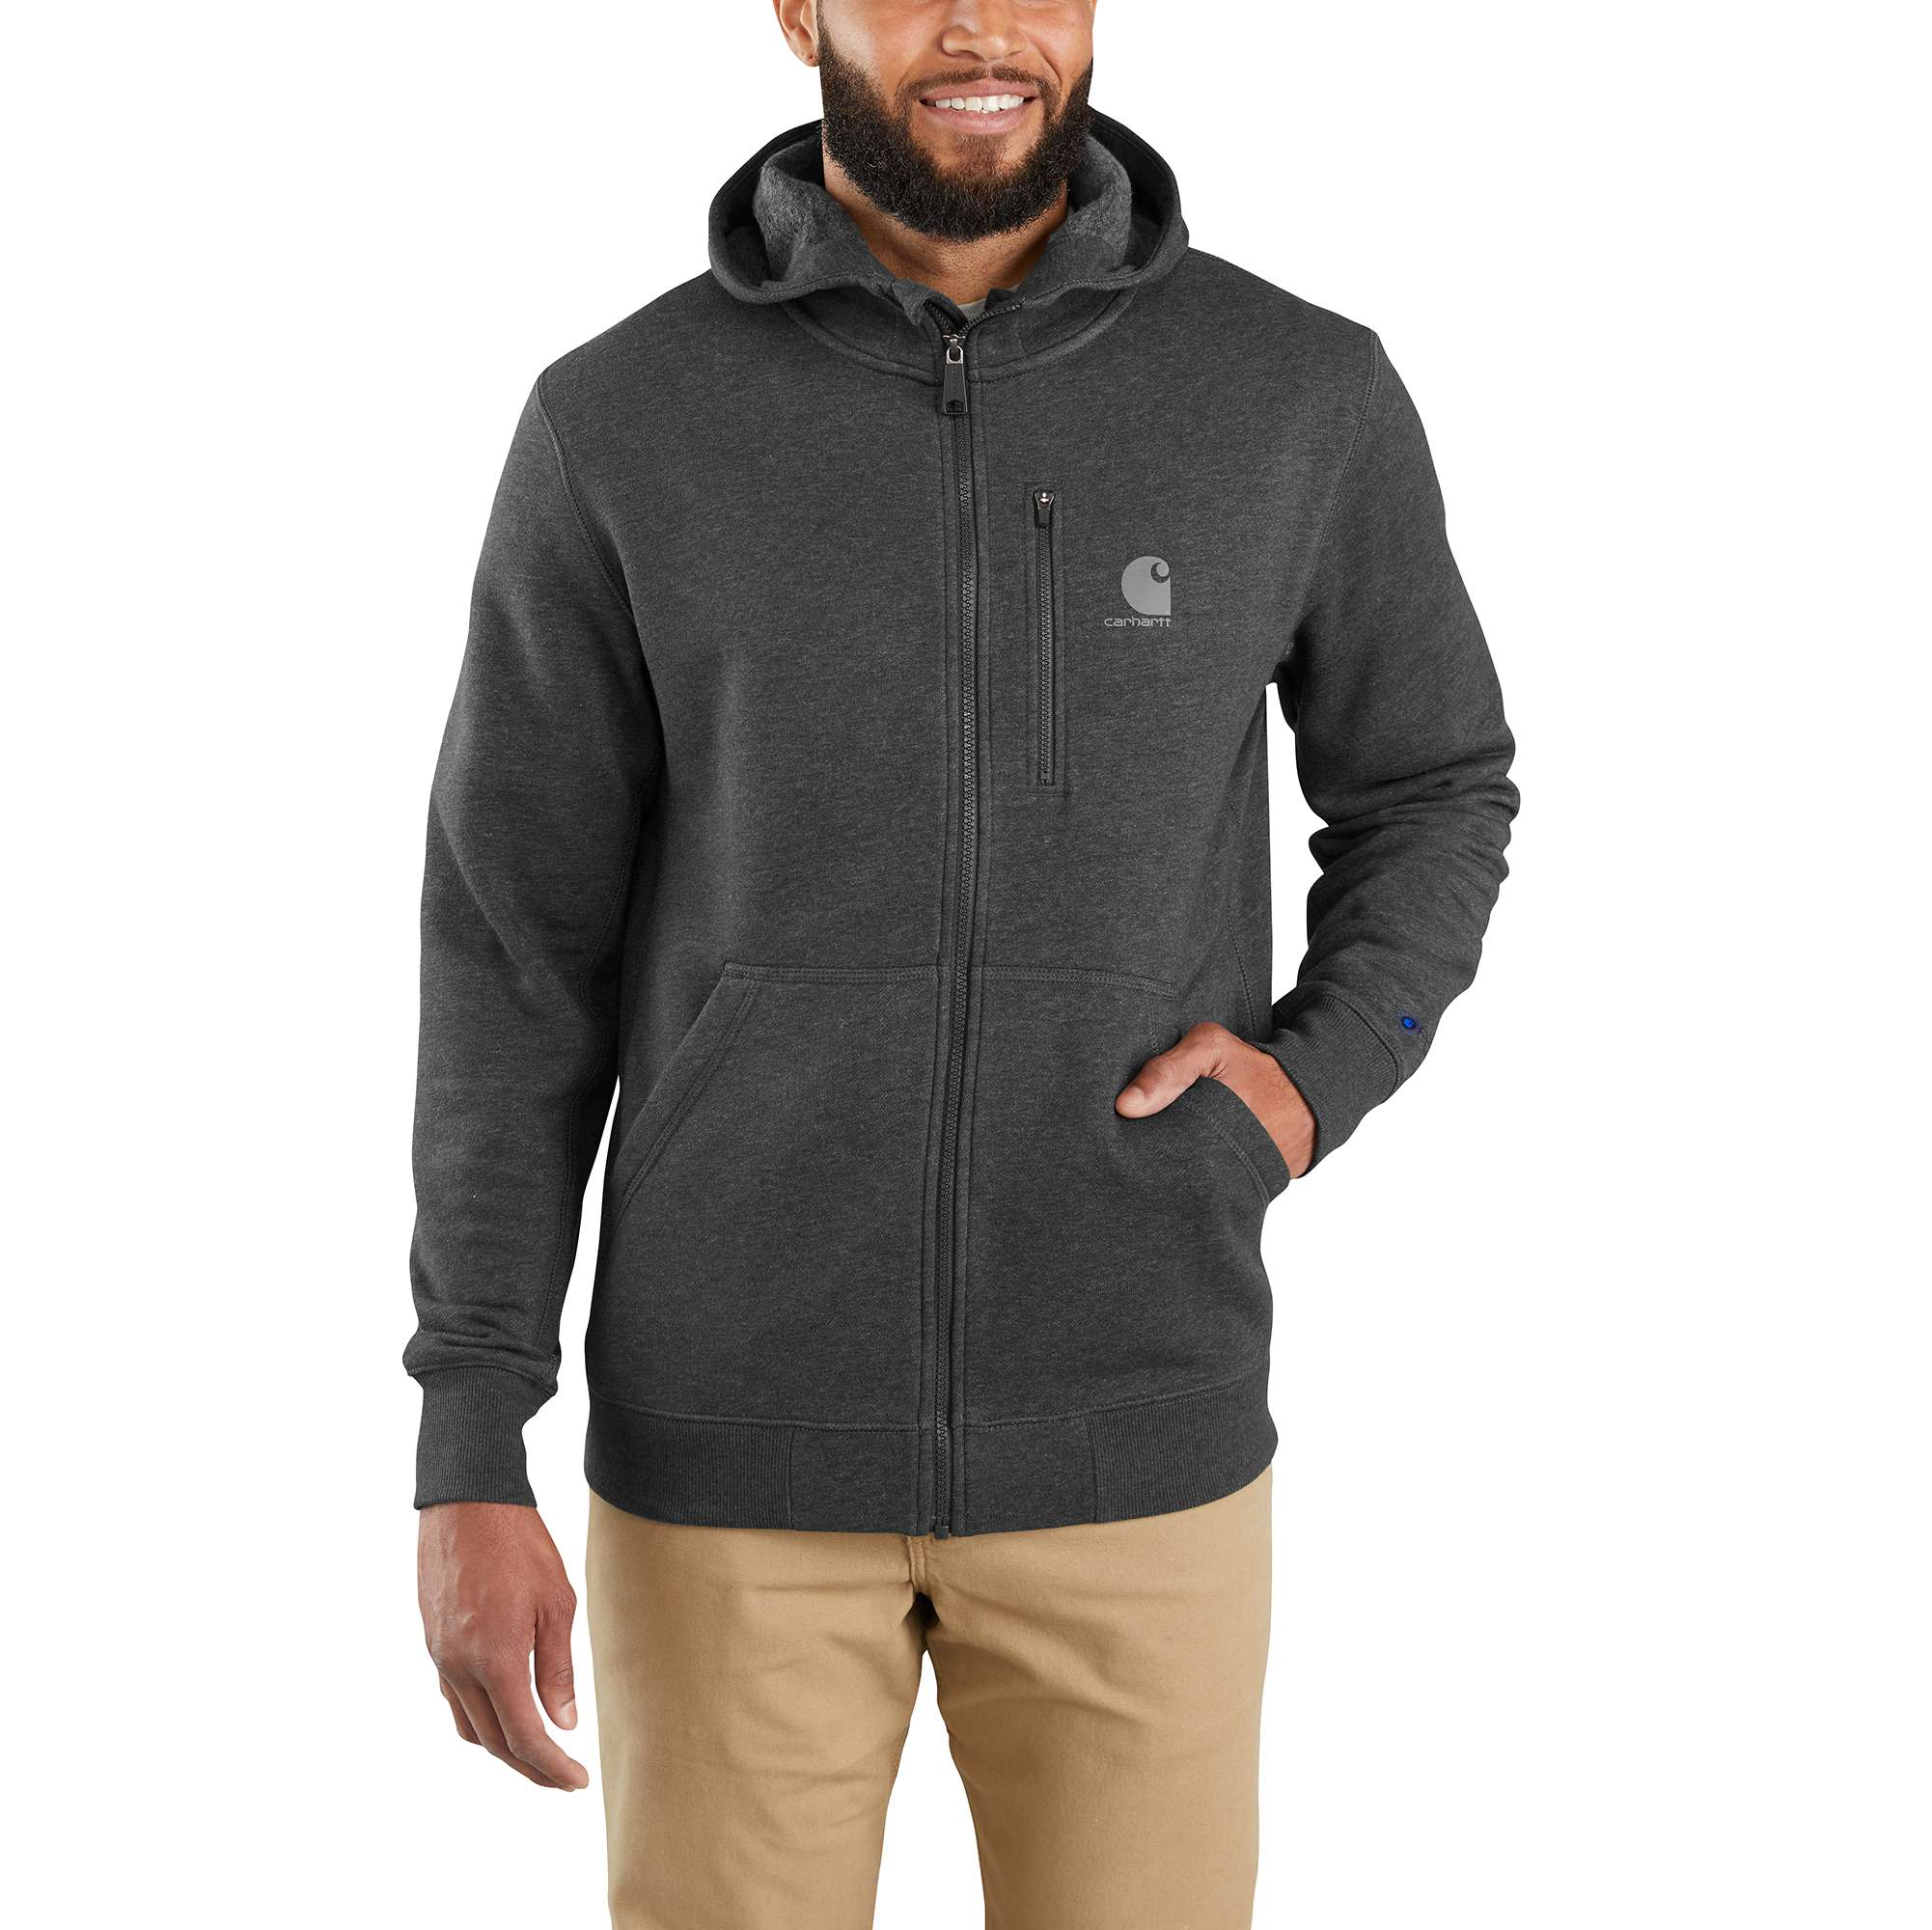 Carhartt Force Delmont Graphic Full-Zip Hooded Sweatshirt